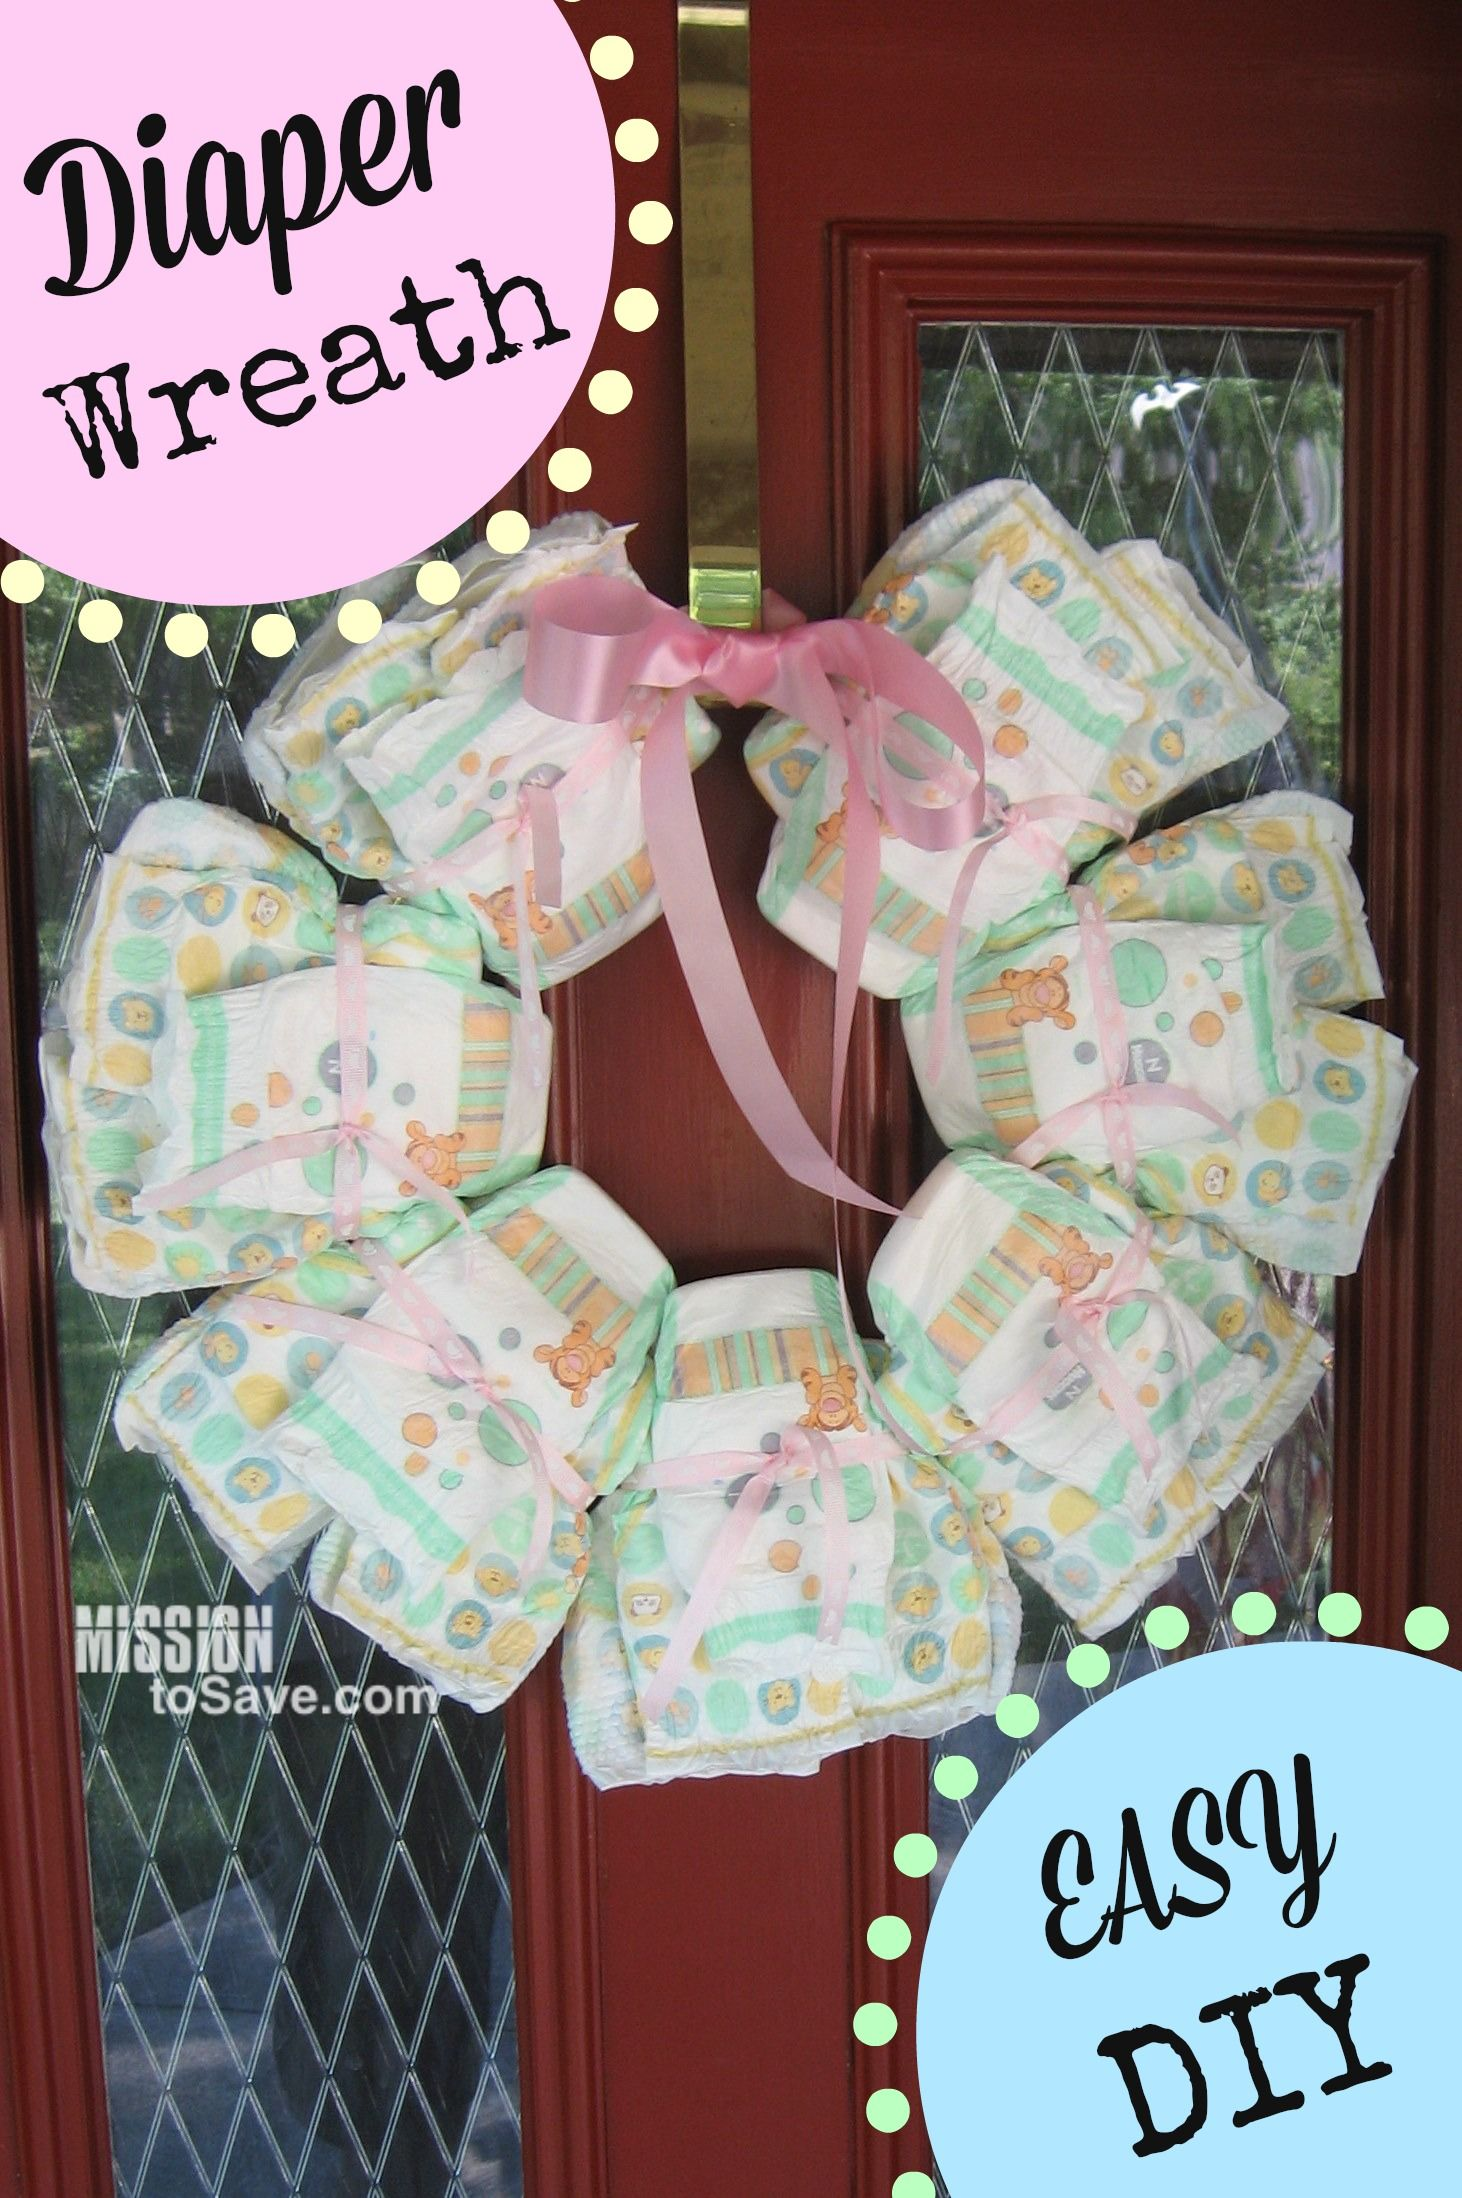 When my 21 year old niece was born, someone gave my sister a DIY Diaper Wreath. It is such a cute and practical gift. And I have been creating these wreaths to welcome baby(s) home ever since. You will not believe how easy they are to make! Supplies: Diapers (to get the stacked look buy a bag of Newborns and a bag of size 1) Ribbon Metal macrame ring (12 in or larger) Wreath hanger Instructions: Lay ring down on  {Read More}